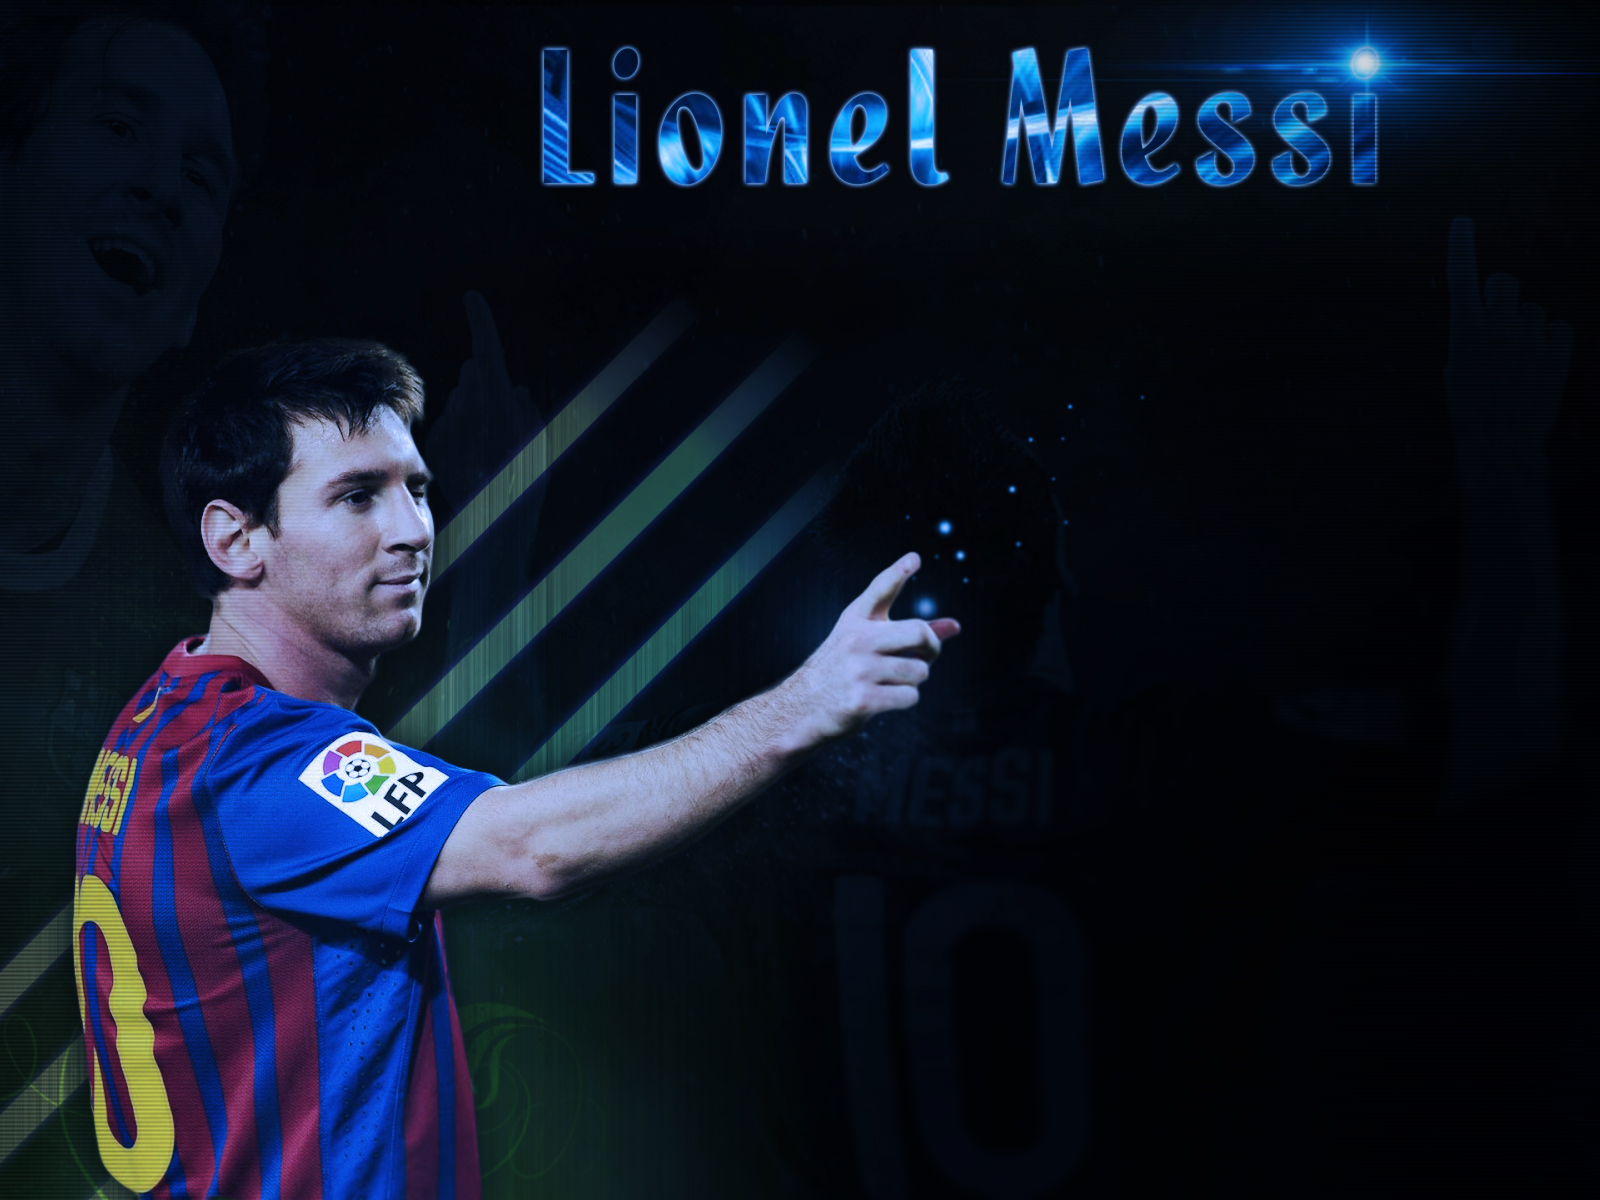 Lionel Messi wallpapers Lionel Messi stock photos 1600x1200